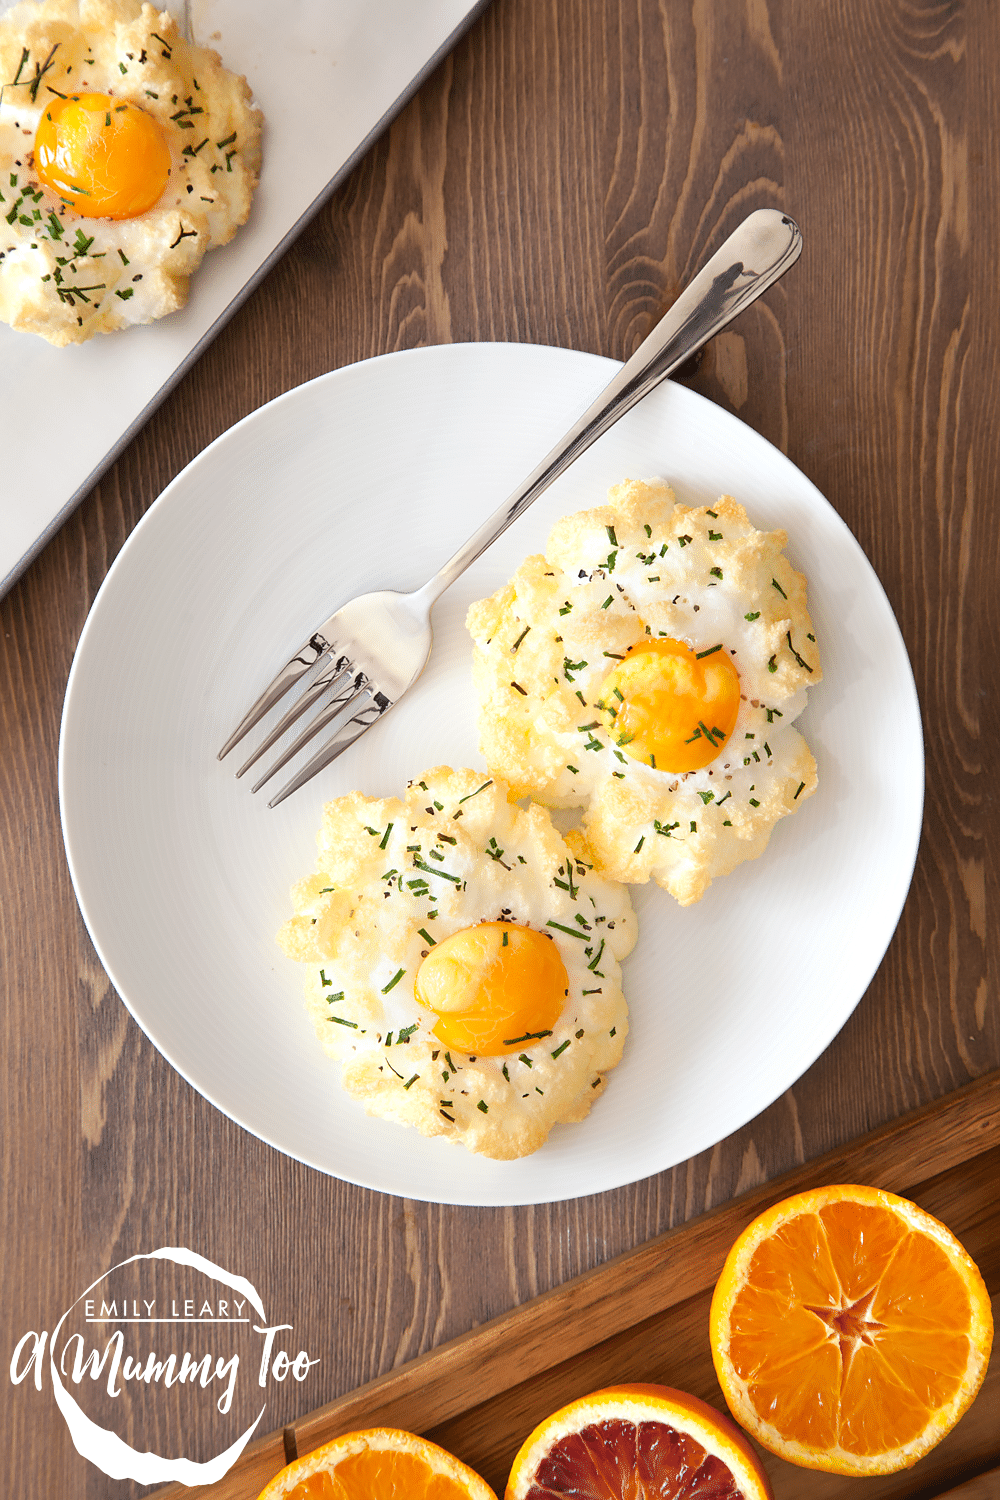 Eggs in clouds are a perfectly heavenly breakfast, made by whipping the eggs whites until fluffy, before returning the yolk to its rightful place and baking until just cooked. If you like eggs, you will love these, I promise.